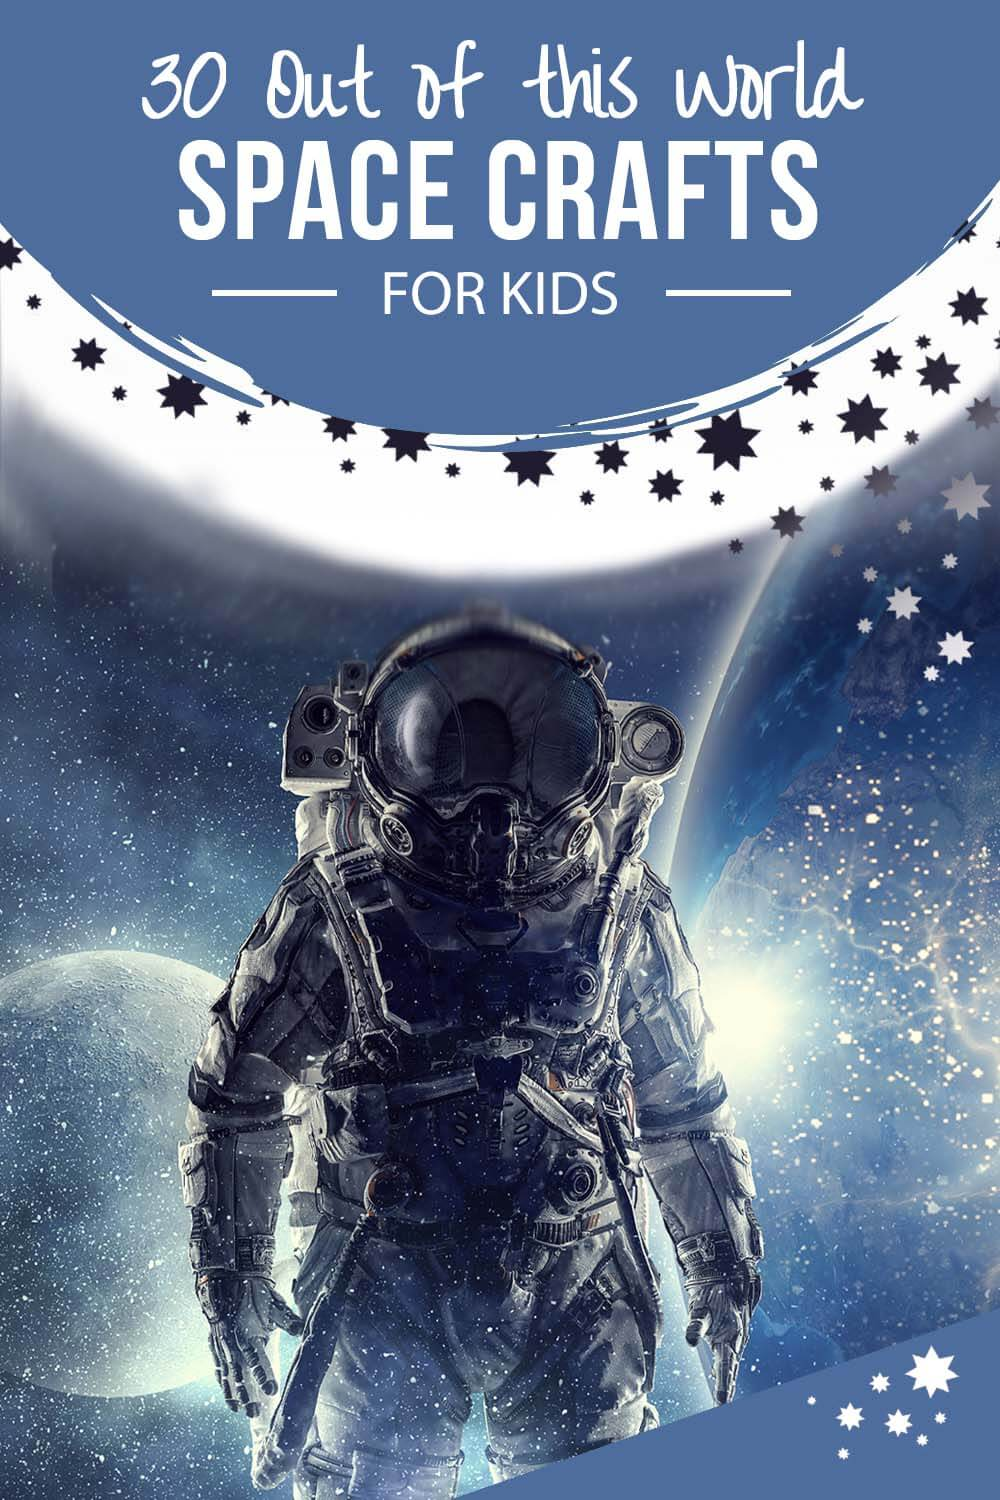 30+ Out of this world Space crafts for kids by Salt Lake Party Stylist